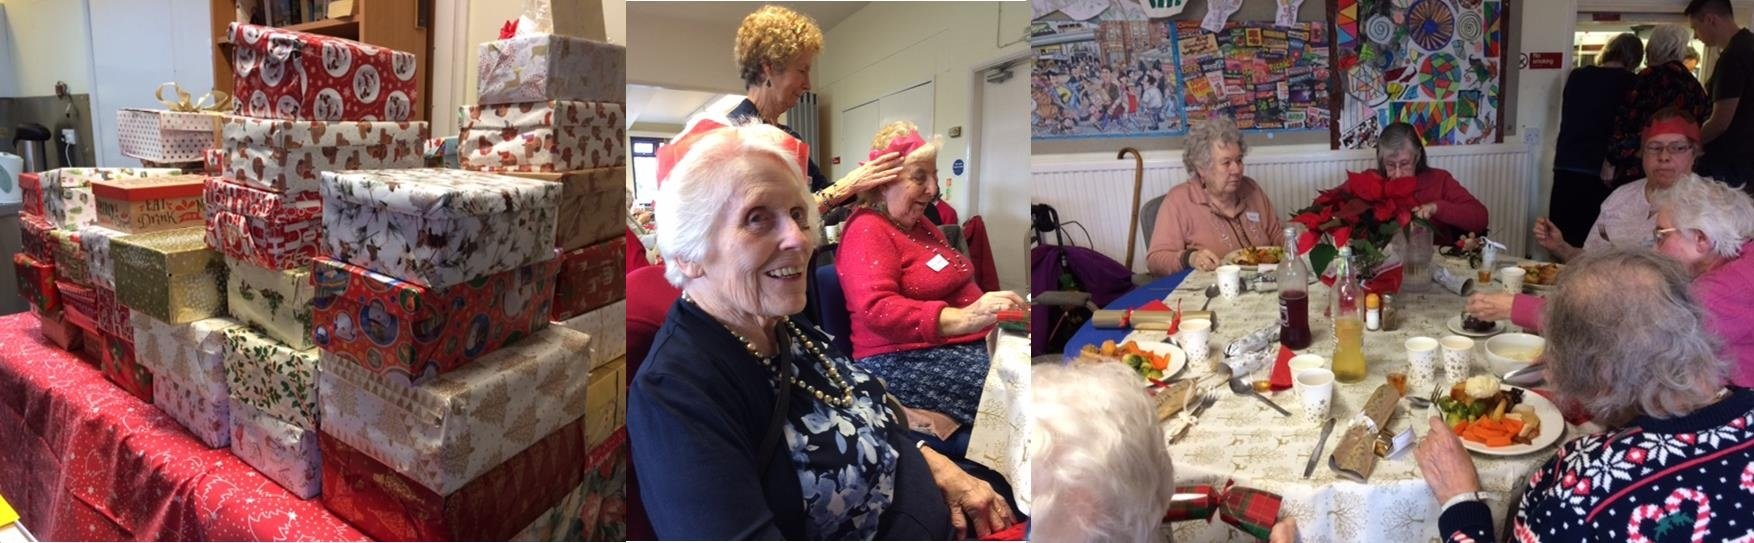 Farnham residents enjoying a Christmas lunch at the Gostrey center